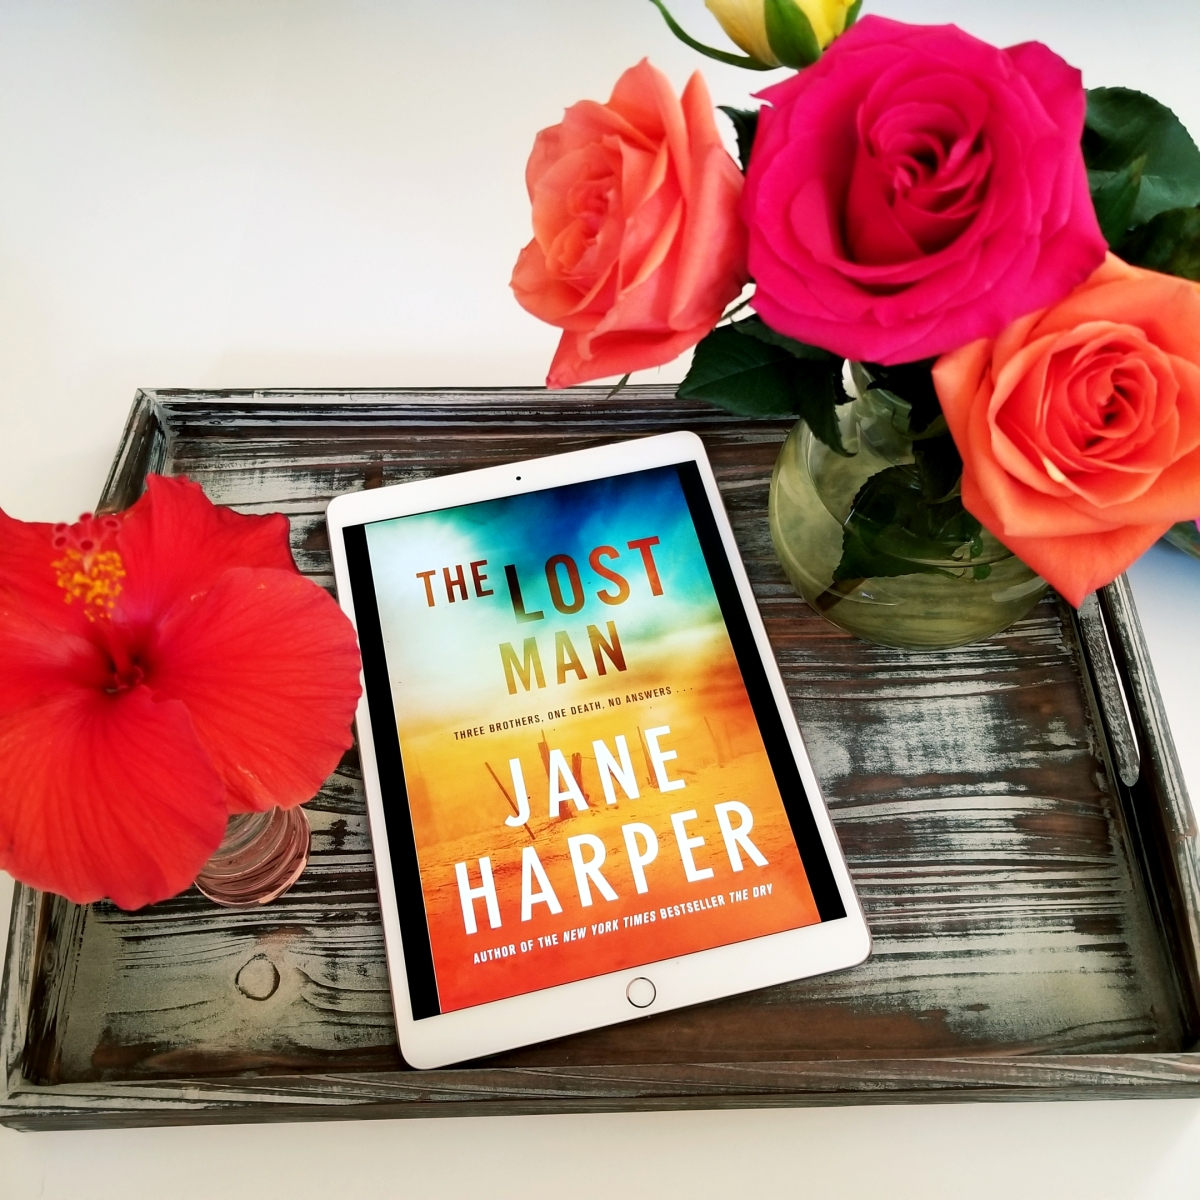 The Lost Man by Jane Harper #bookreview #tarheelreader #thrlostman @janeharperautho @flatironbooks #thelostman